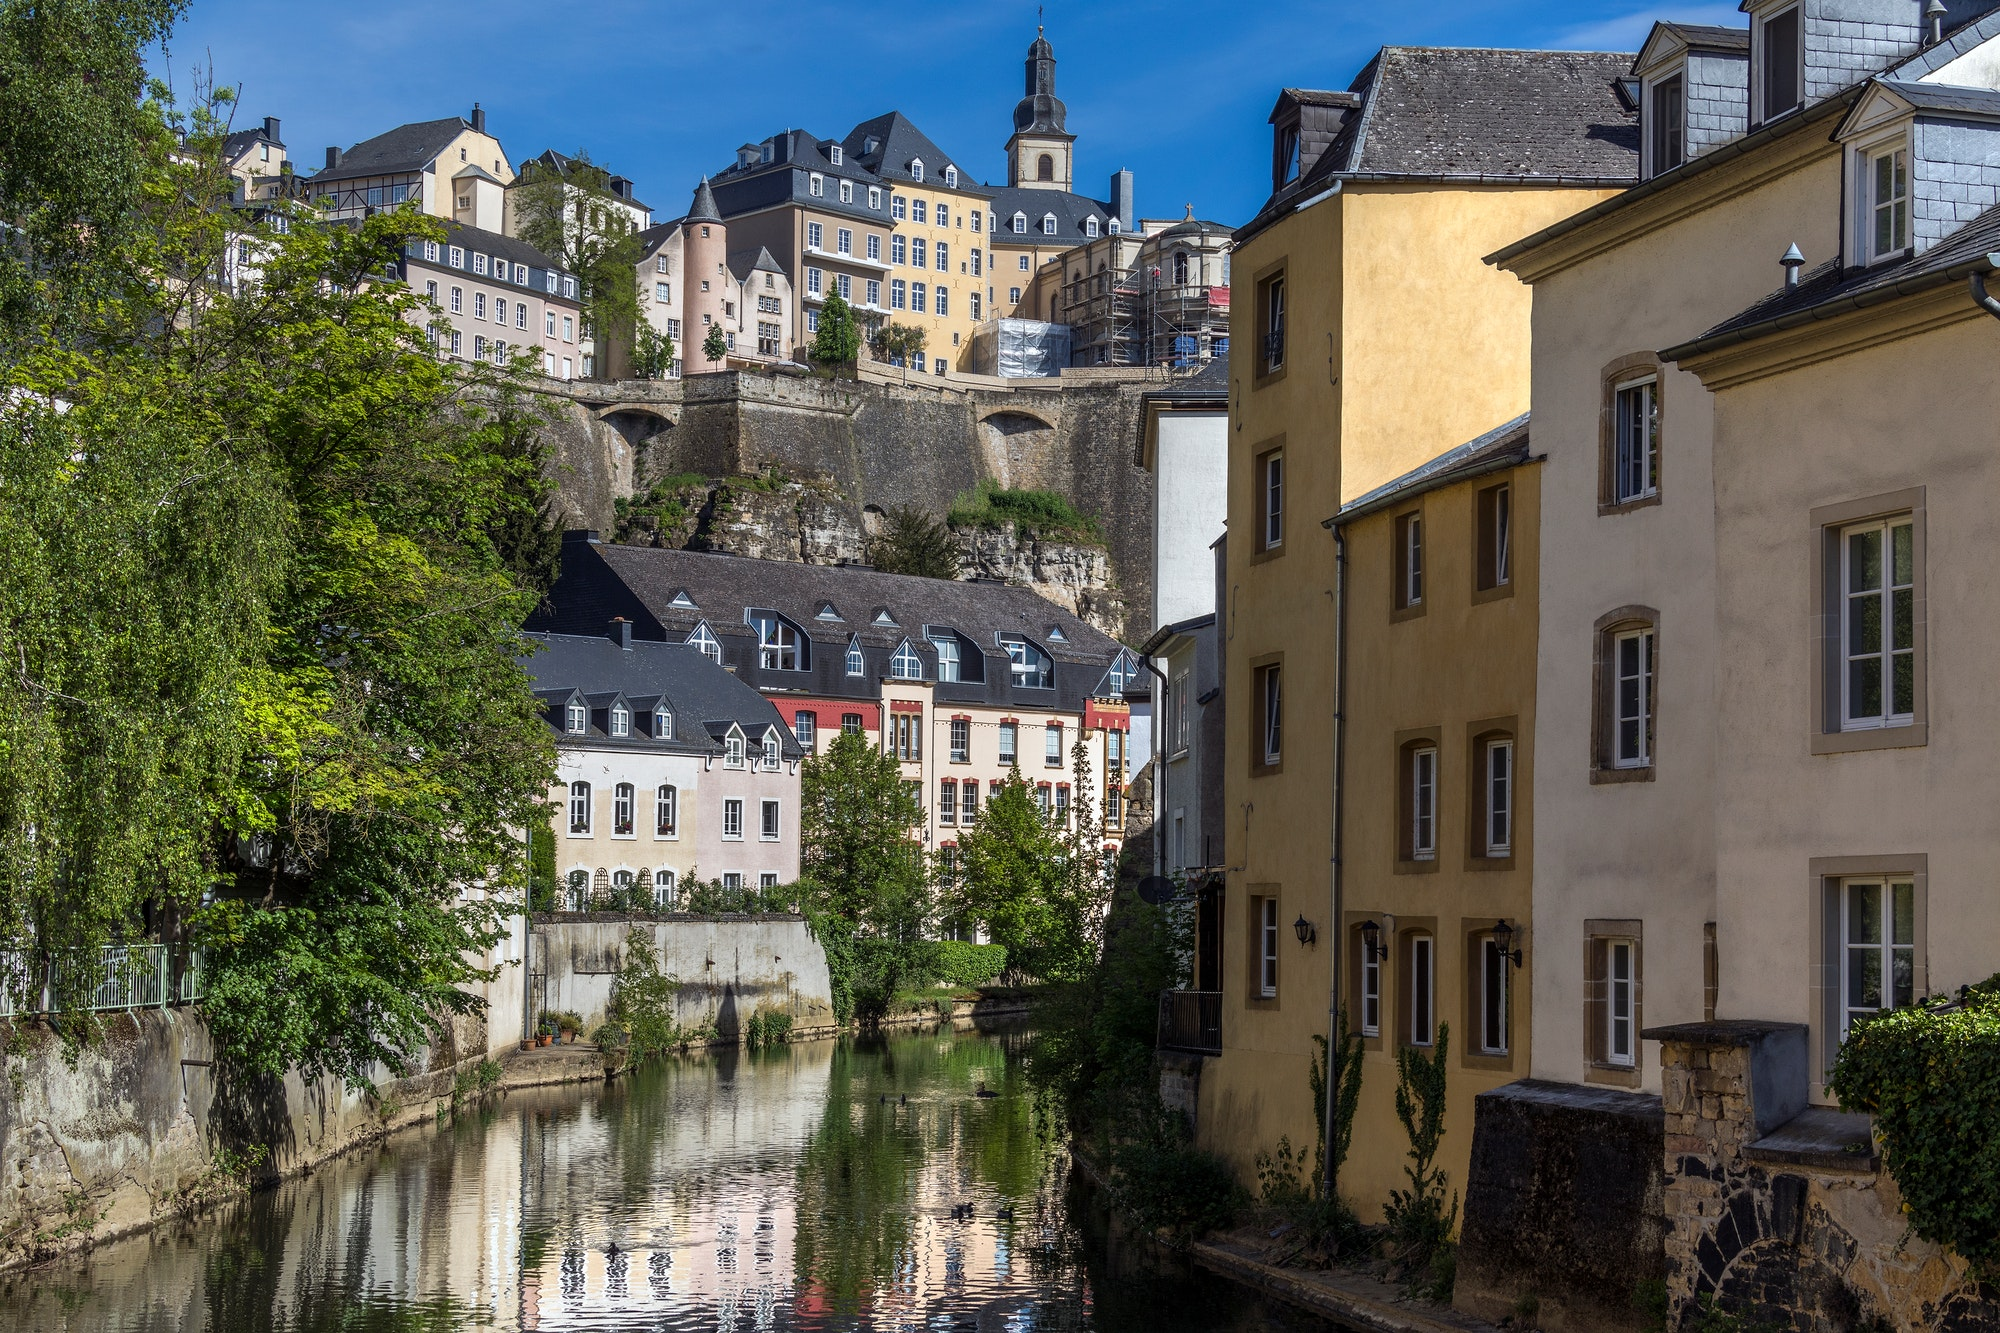 Luxembourg City - Ville de Luxembourg